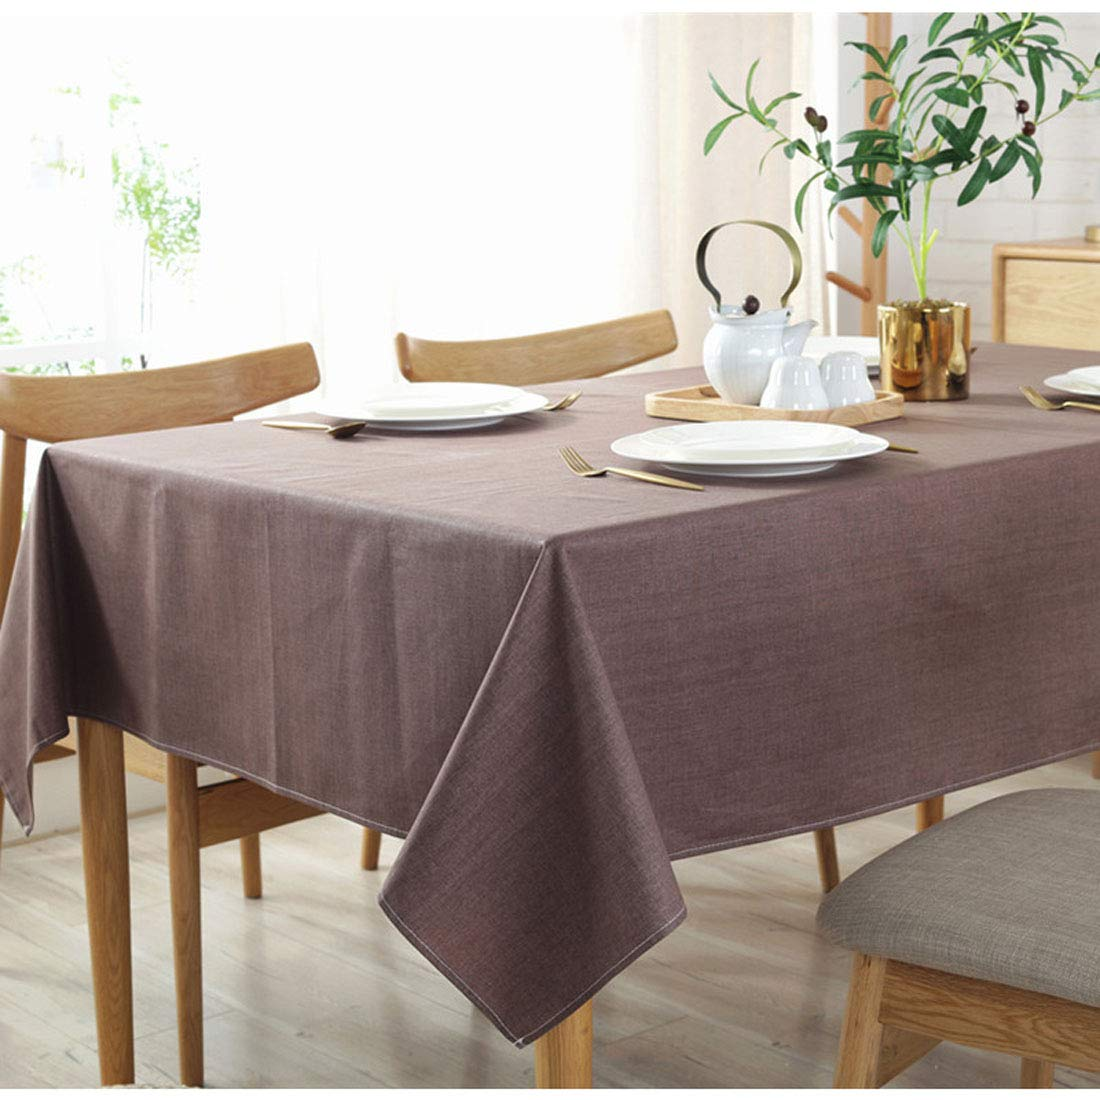 """Bringsine Solid Cotton Linen Tablecloth Stain Resistant/Spill-Proof/Waterproof Lace Table Cloth Cover for Kitchen Dinning Tabletop Decor(Rectangle/Oblong, 53"""" x 98"""", Coffee)"""